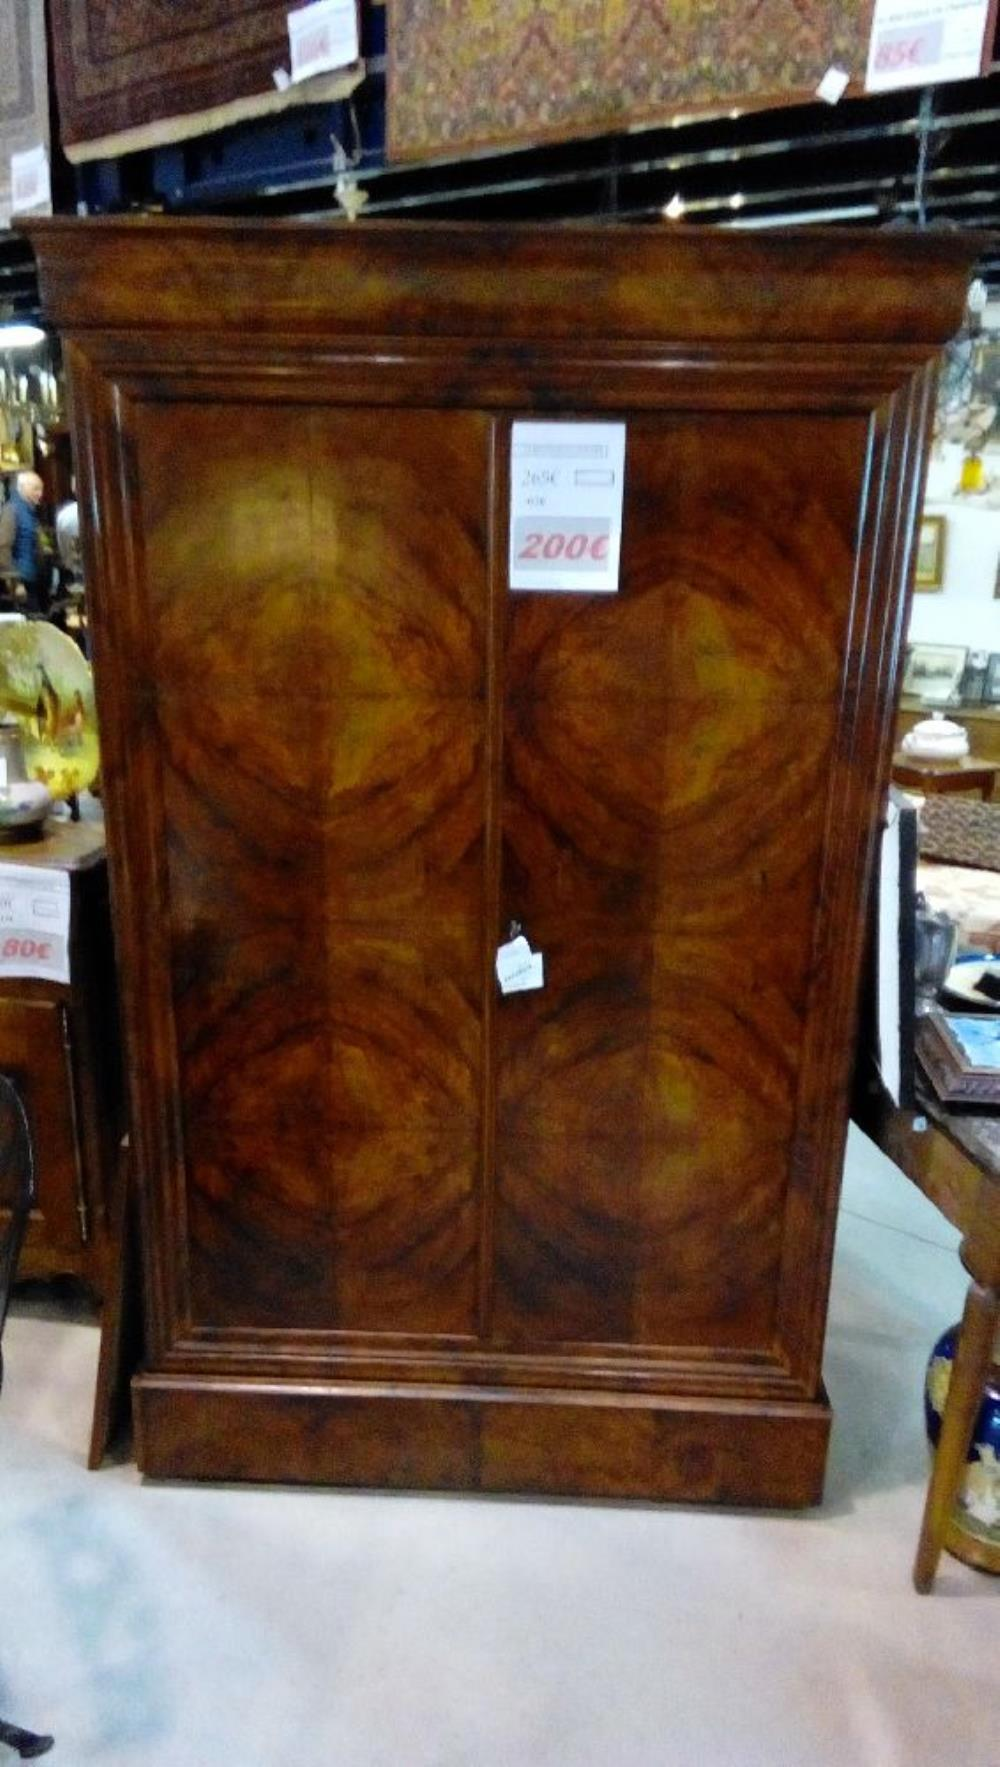 armoire 2p 1t ronce noyer l121h195p47 occasion la boutique du chineur. Black Bedroom Furniture Sets. Home Design Ideas